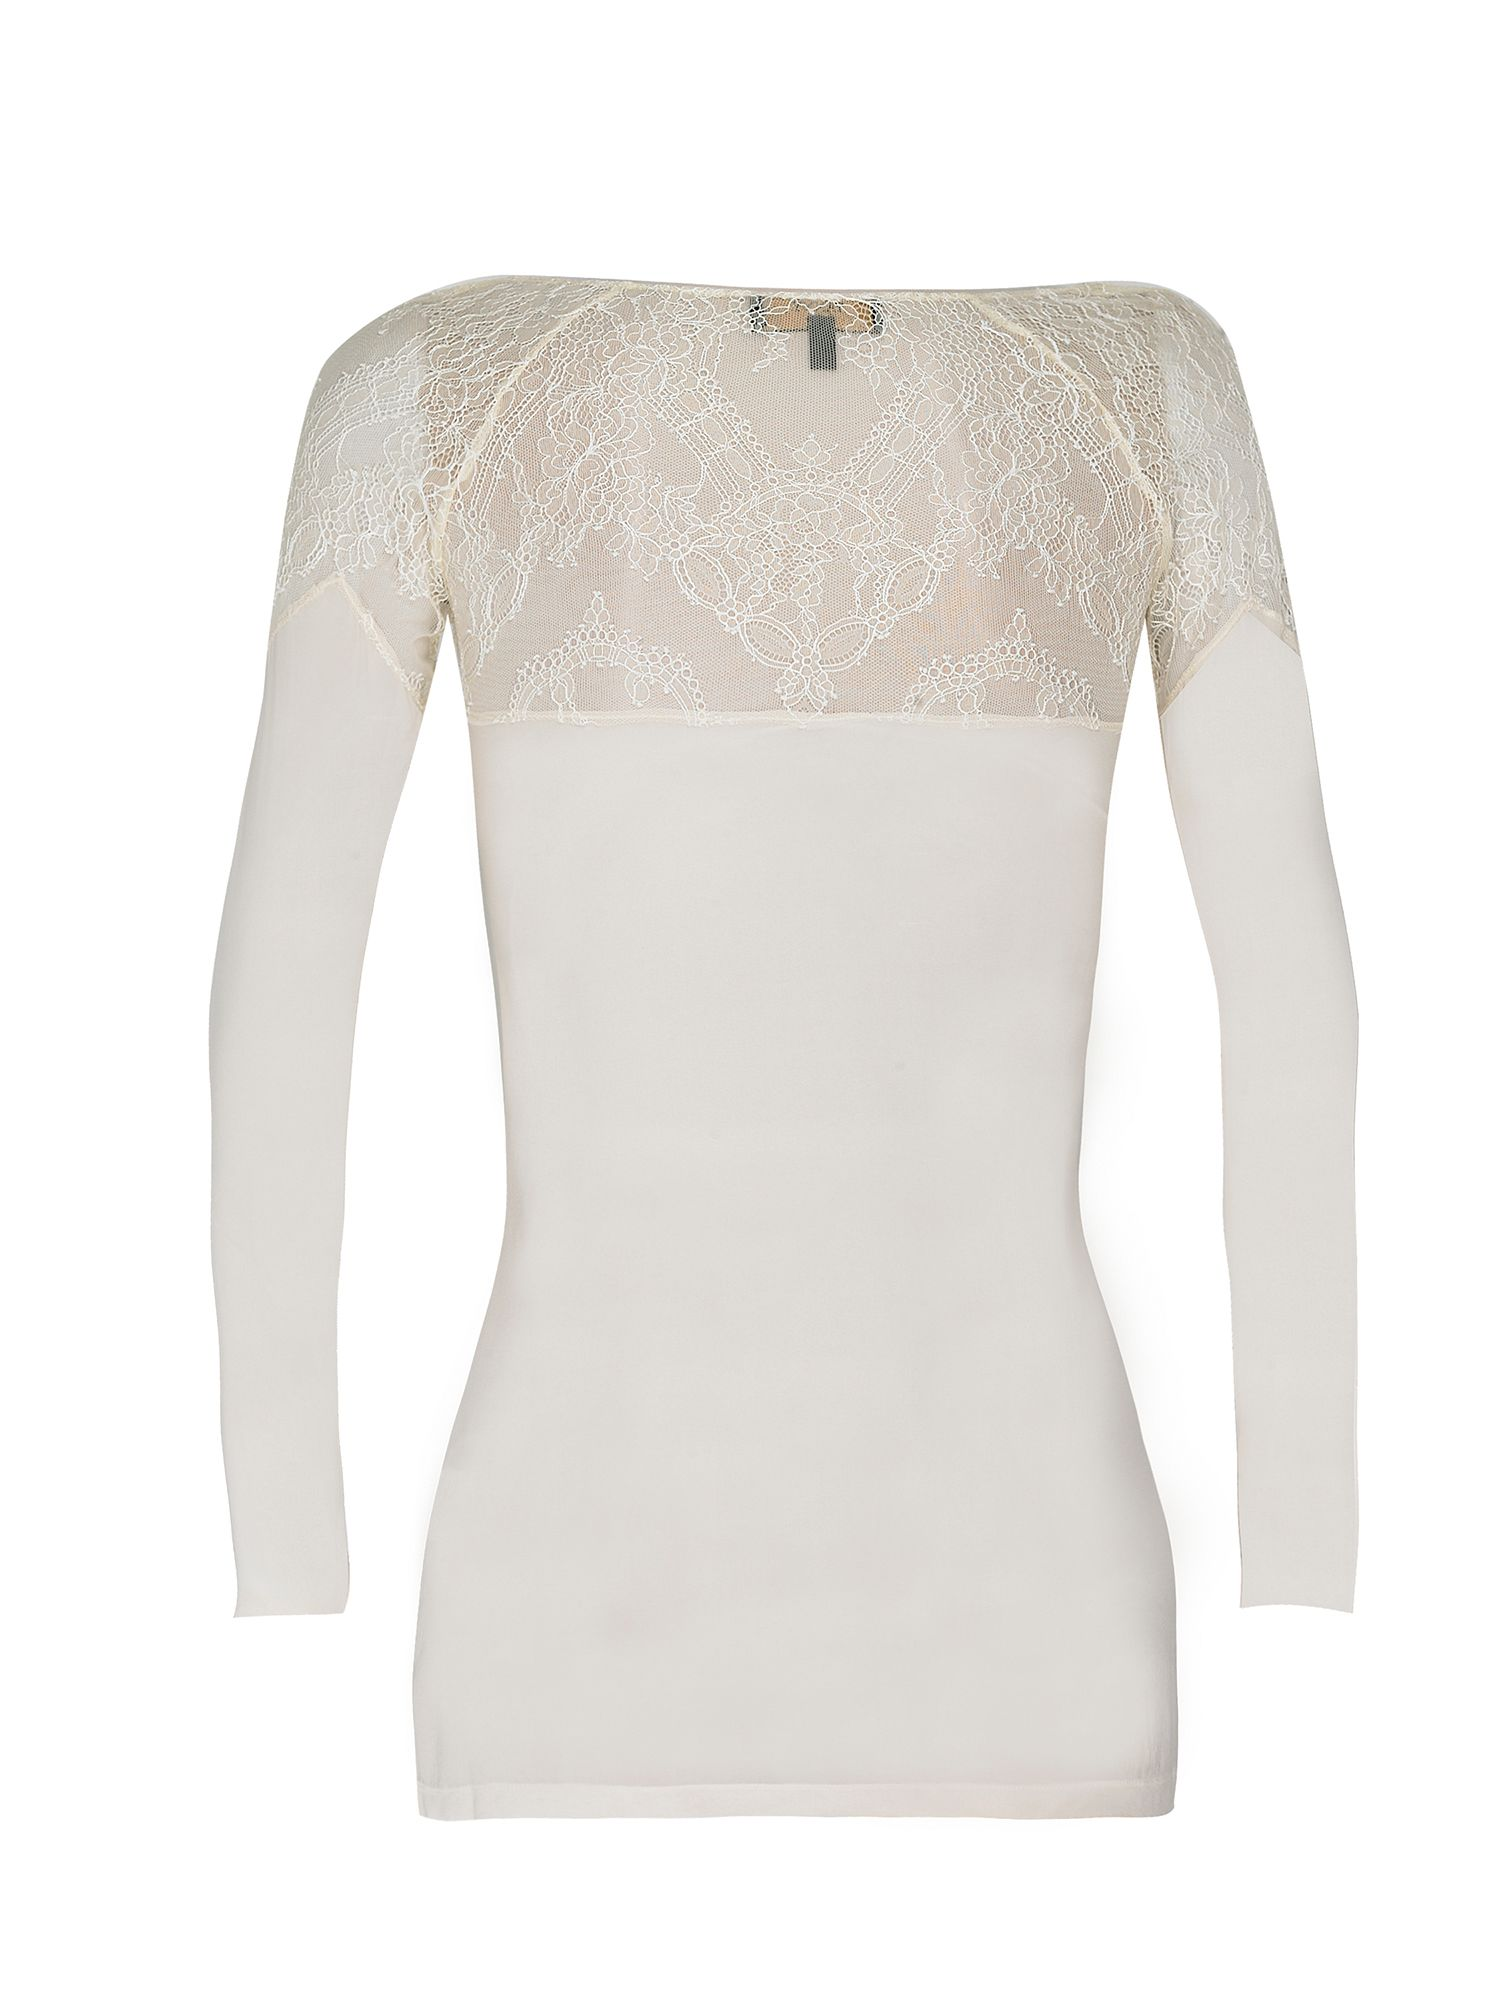 French chantilly lace and silk top